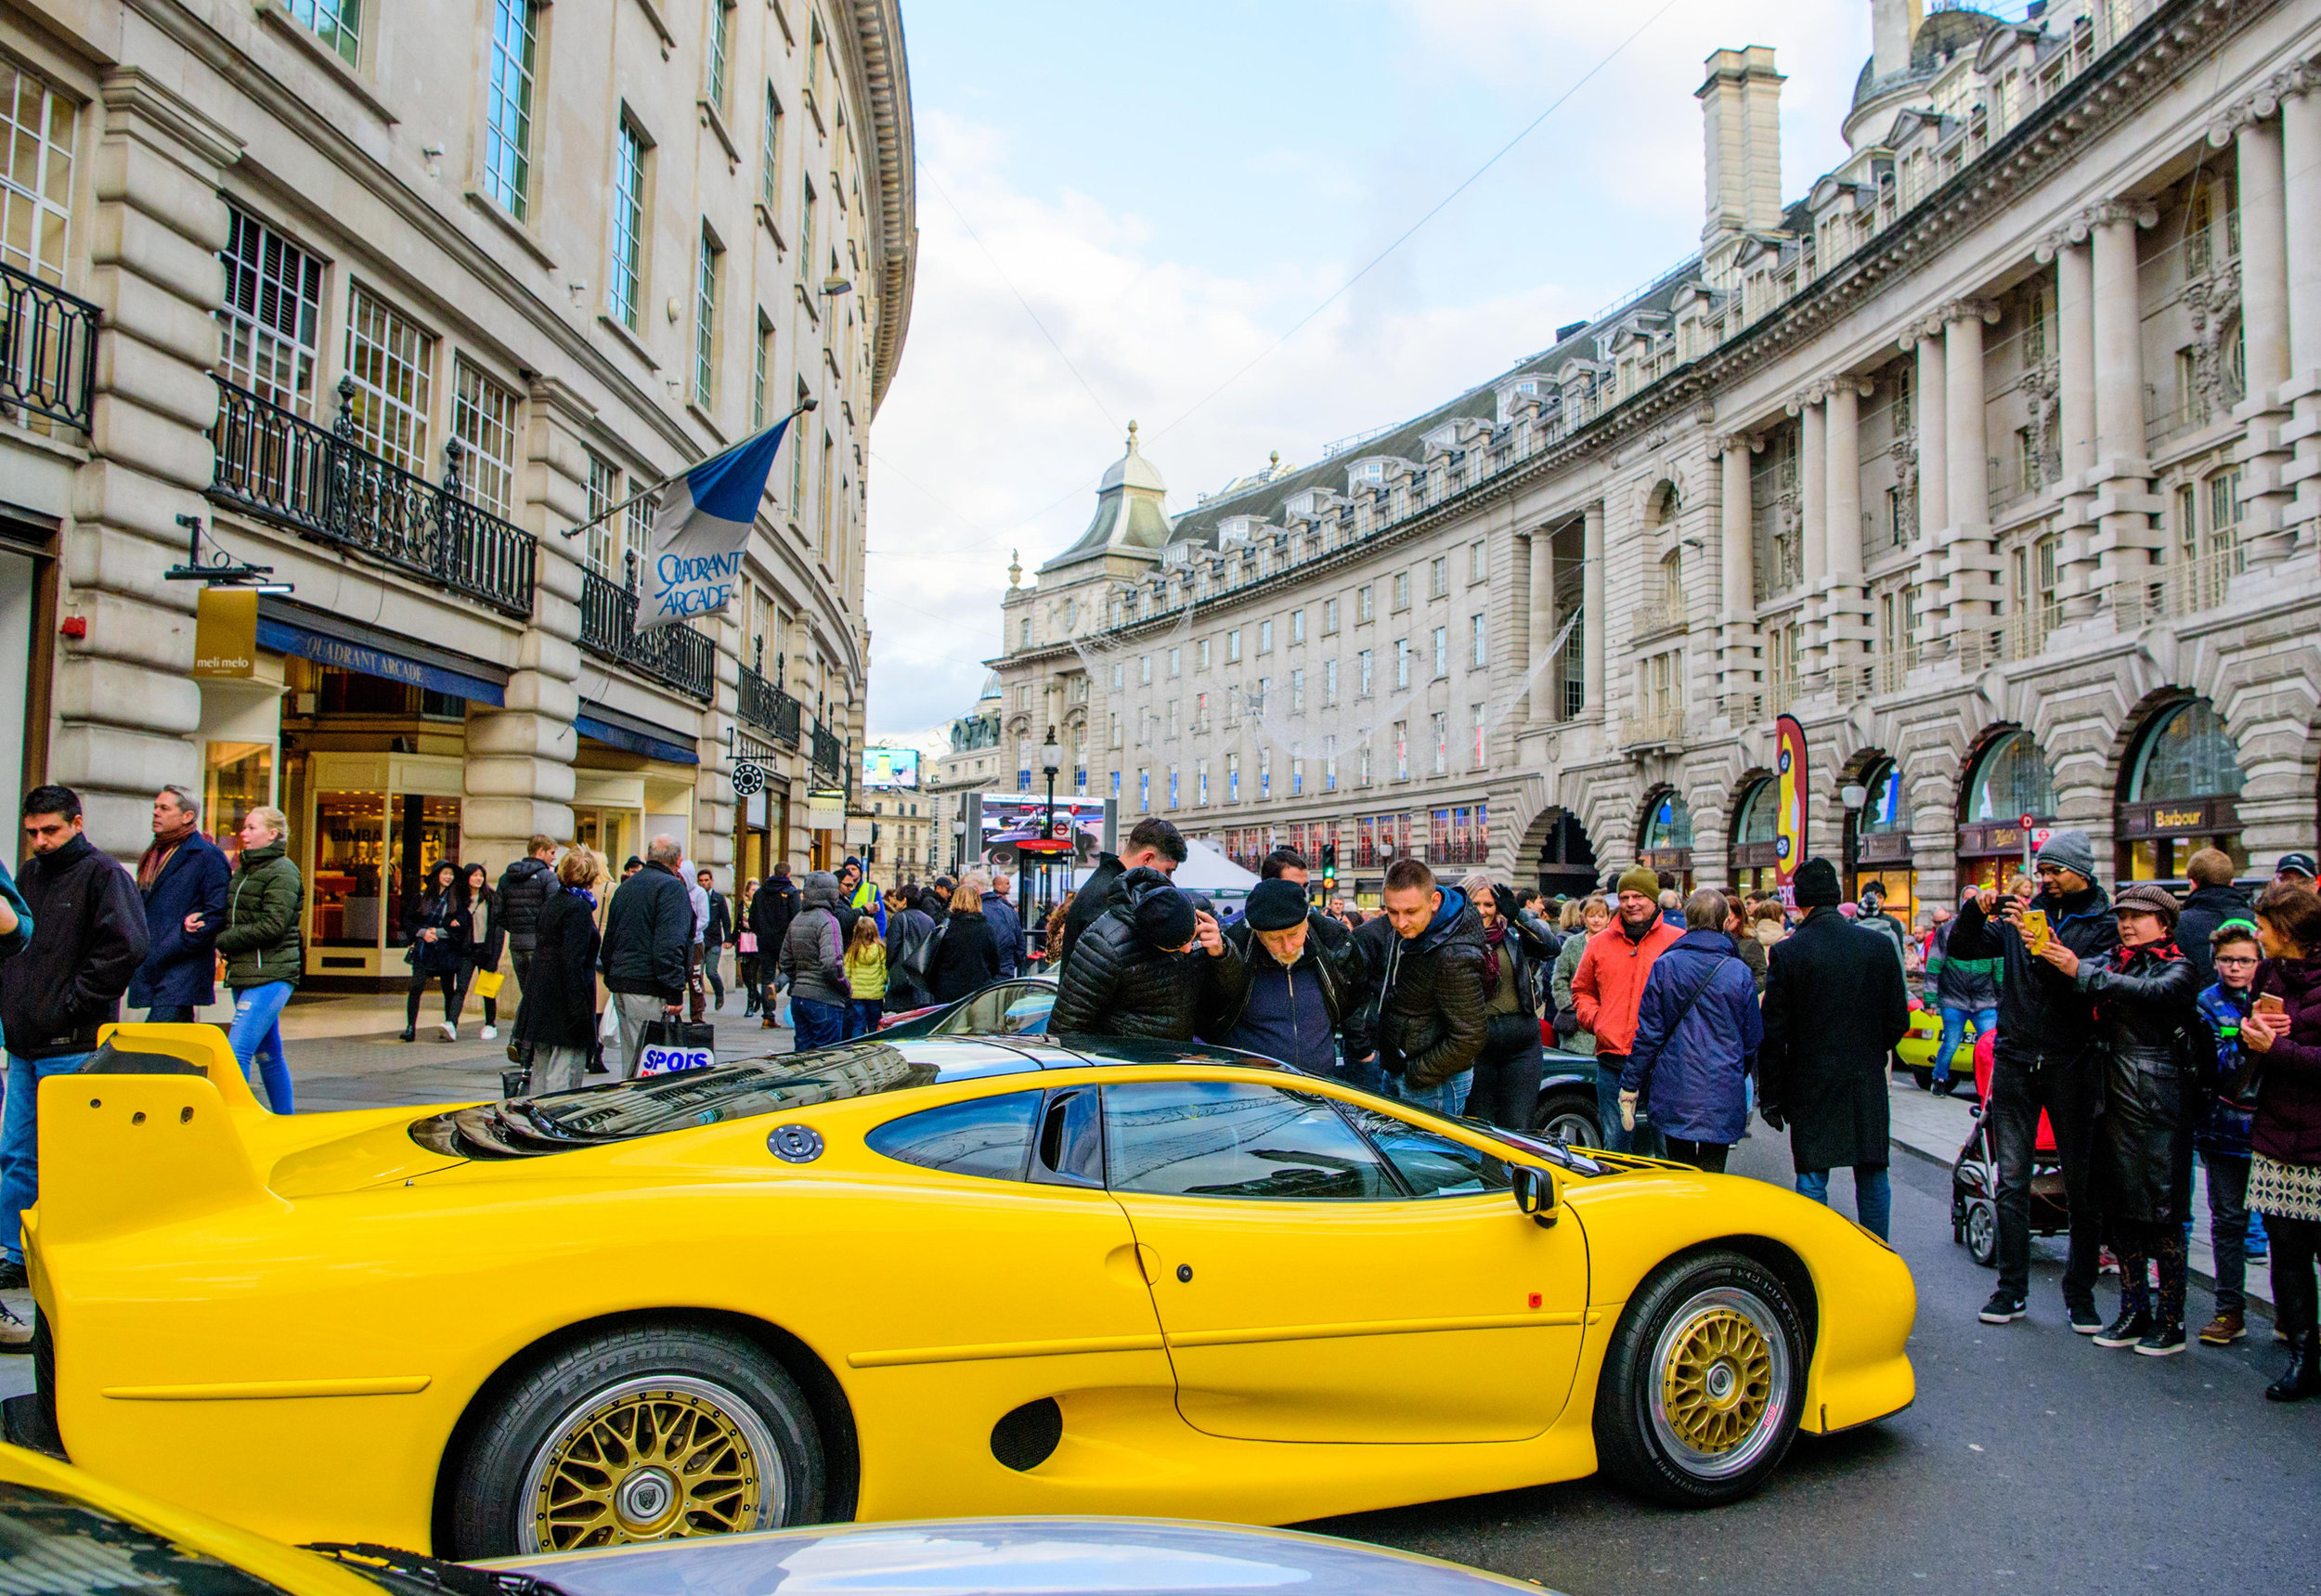 Jaguar-XJ220-attracts-attention-on-Regent-Street.jpg